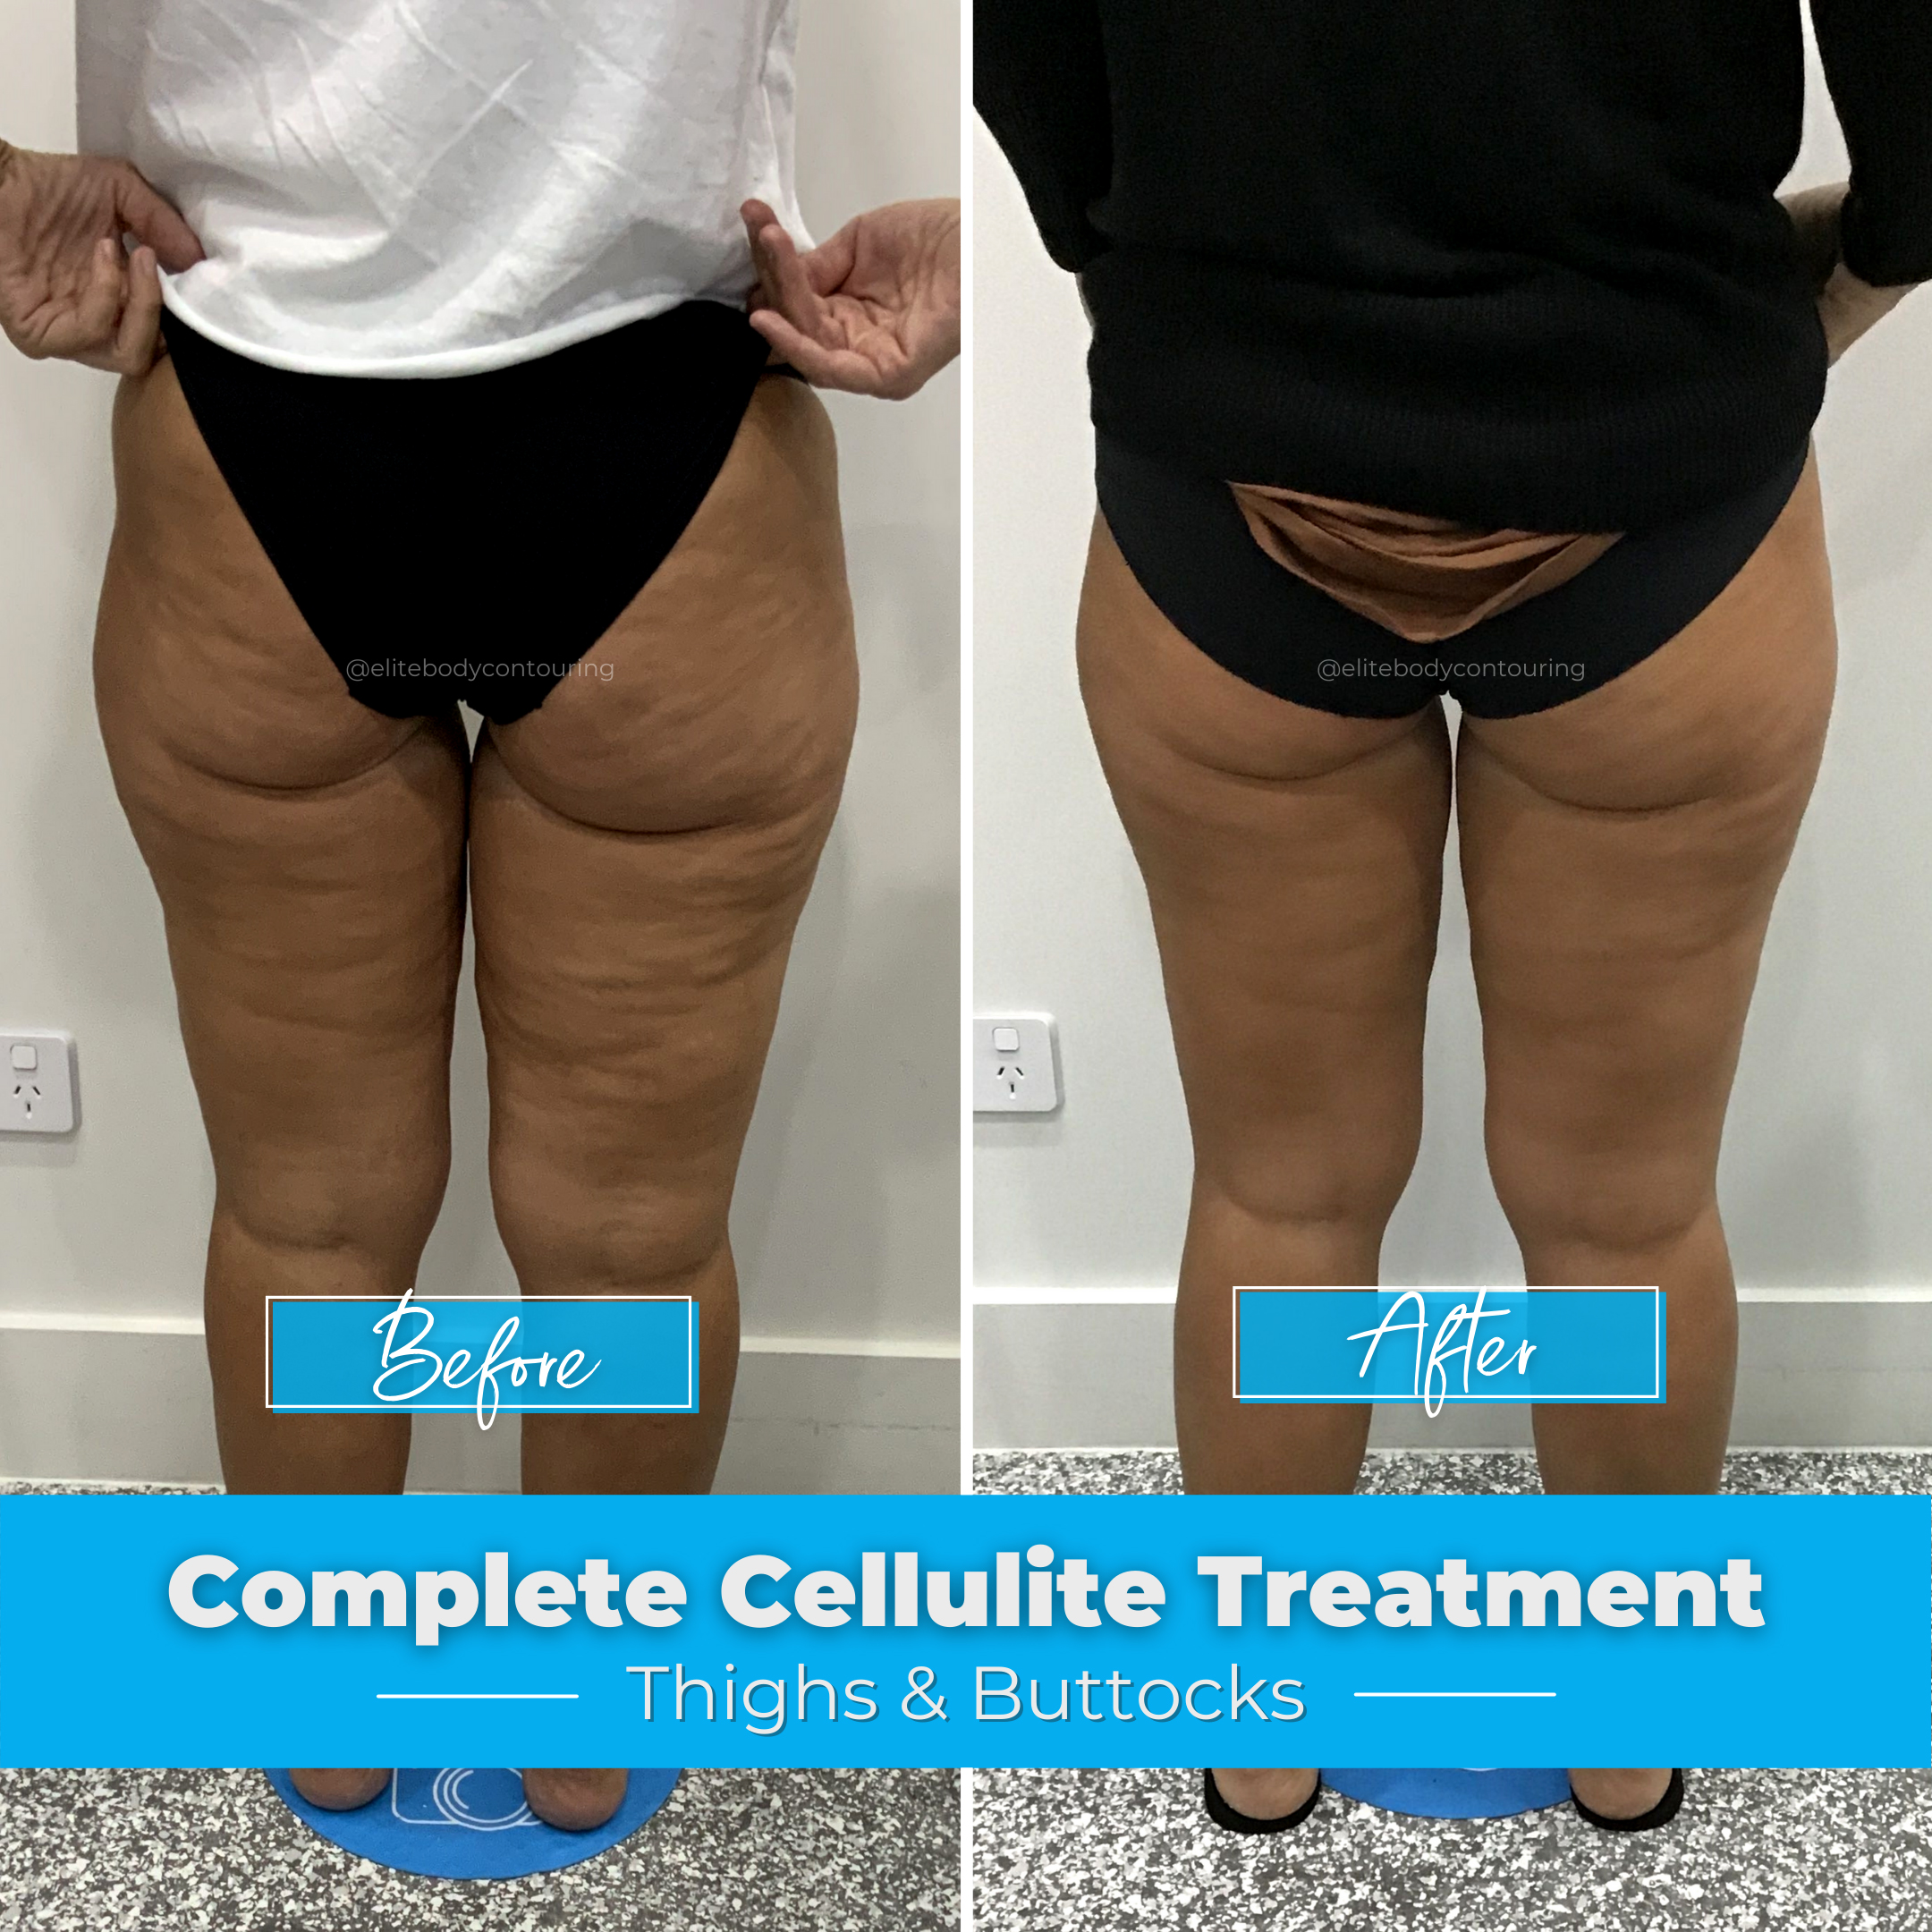 Cellulite Treatment - Thighs & Buttocks